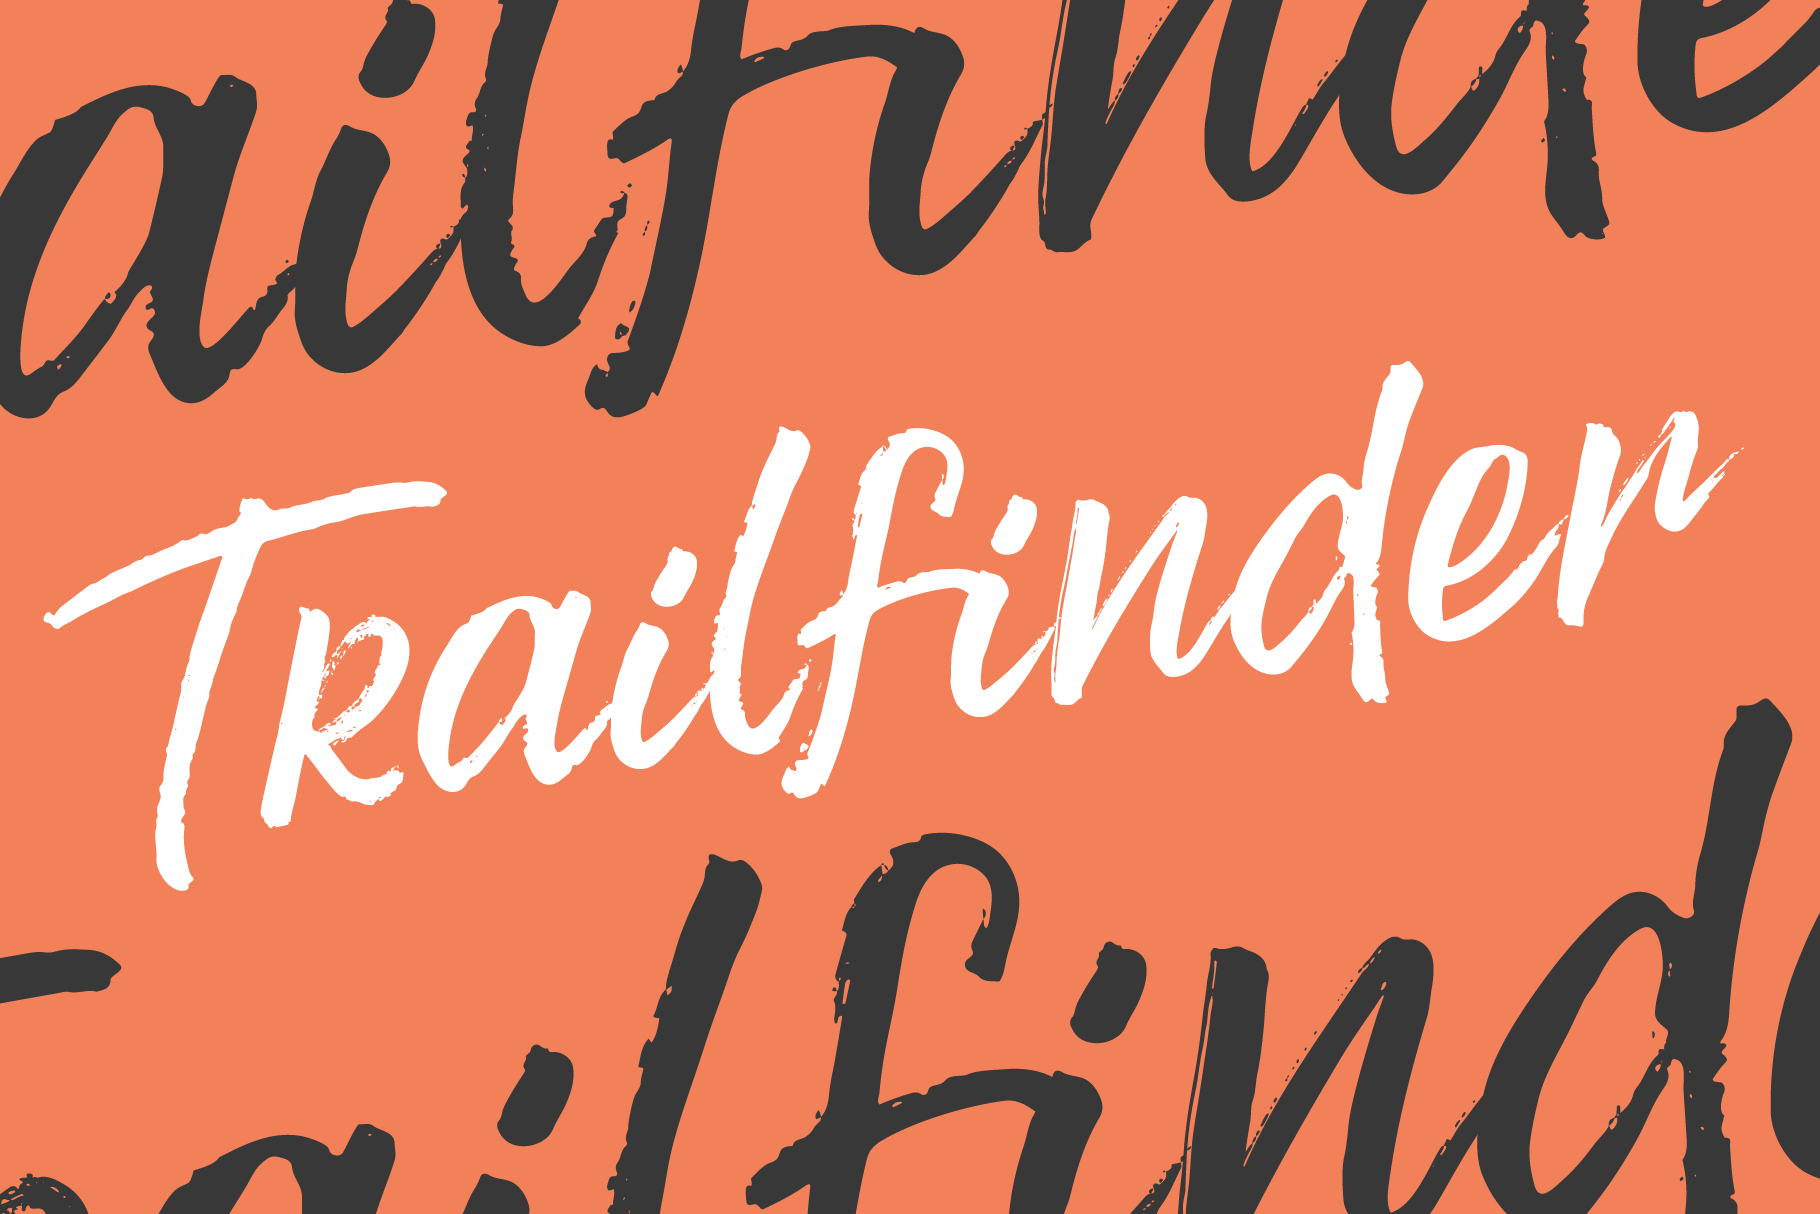 Trailfinder | A Brush Script Font example image 1